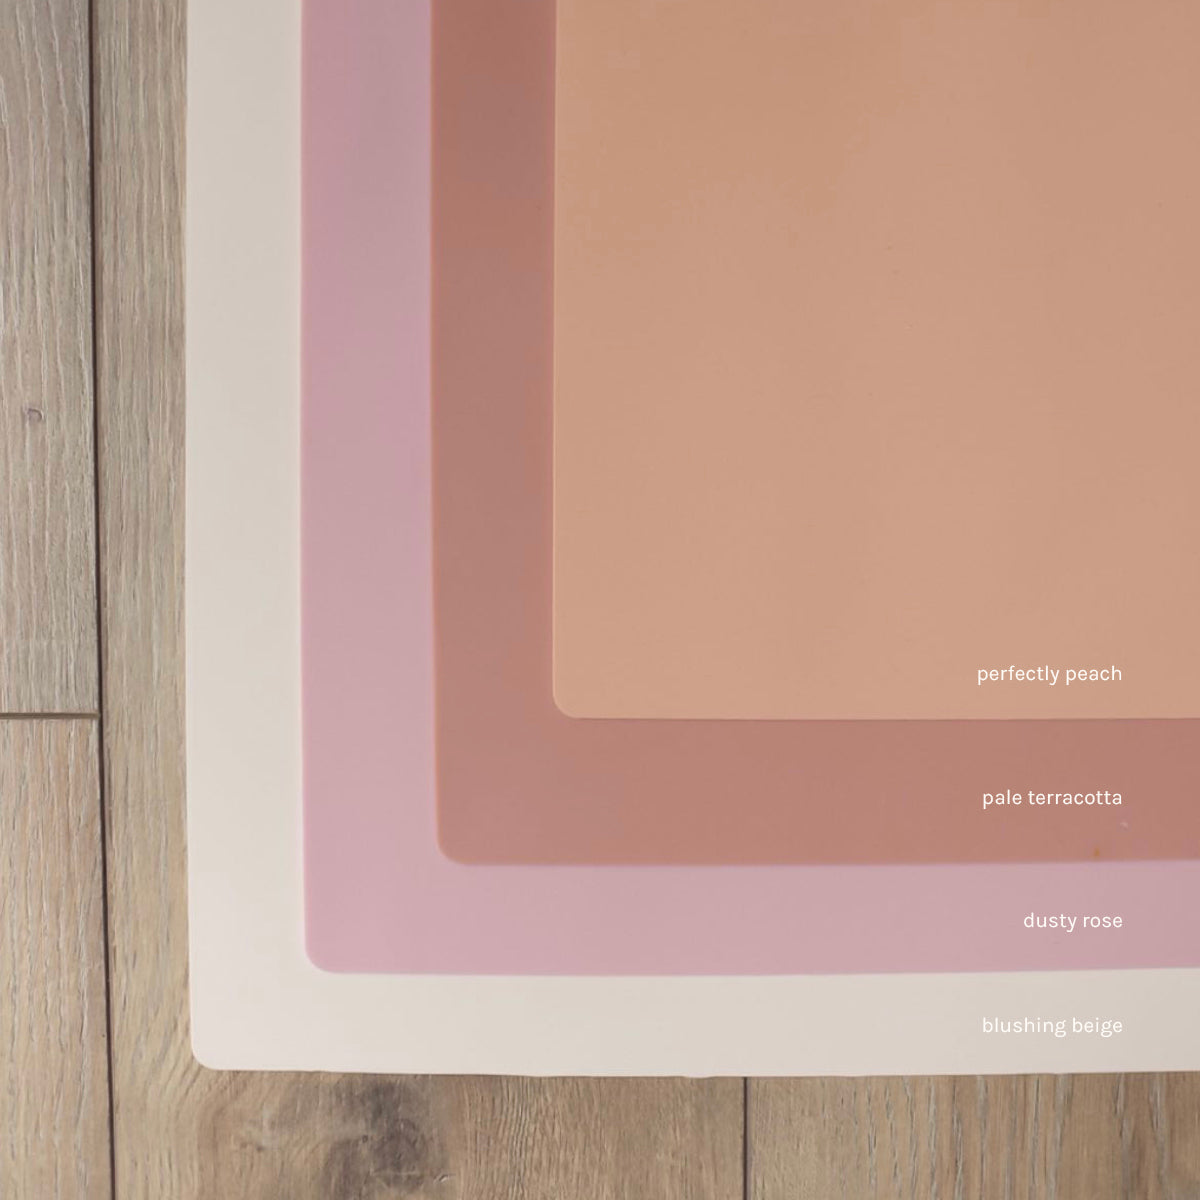 Limited Edition Perfectly Peach IKEA Highchair Placemat